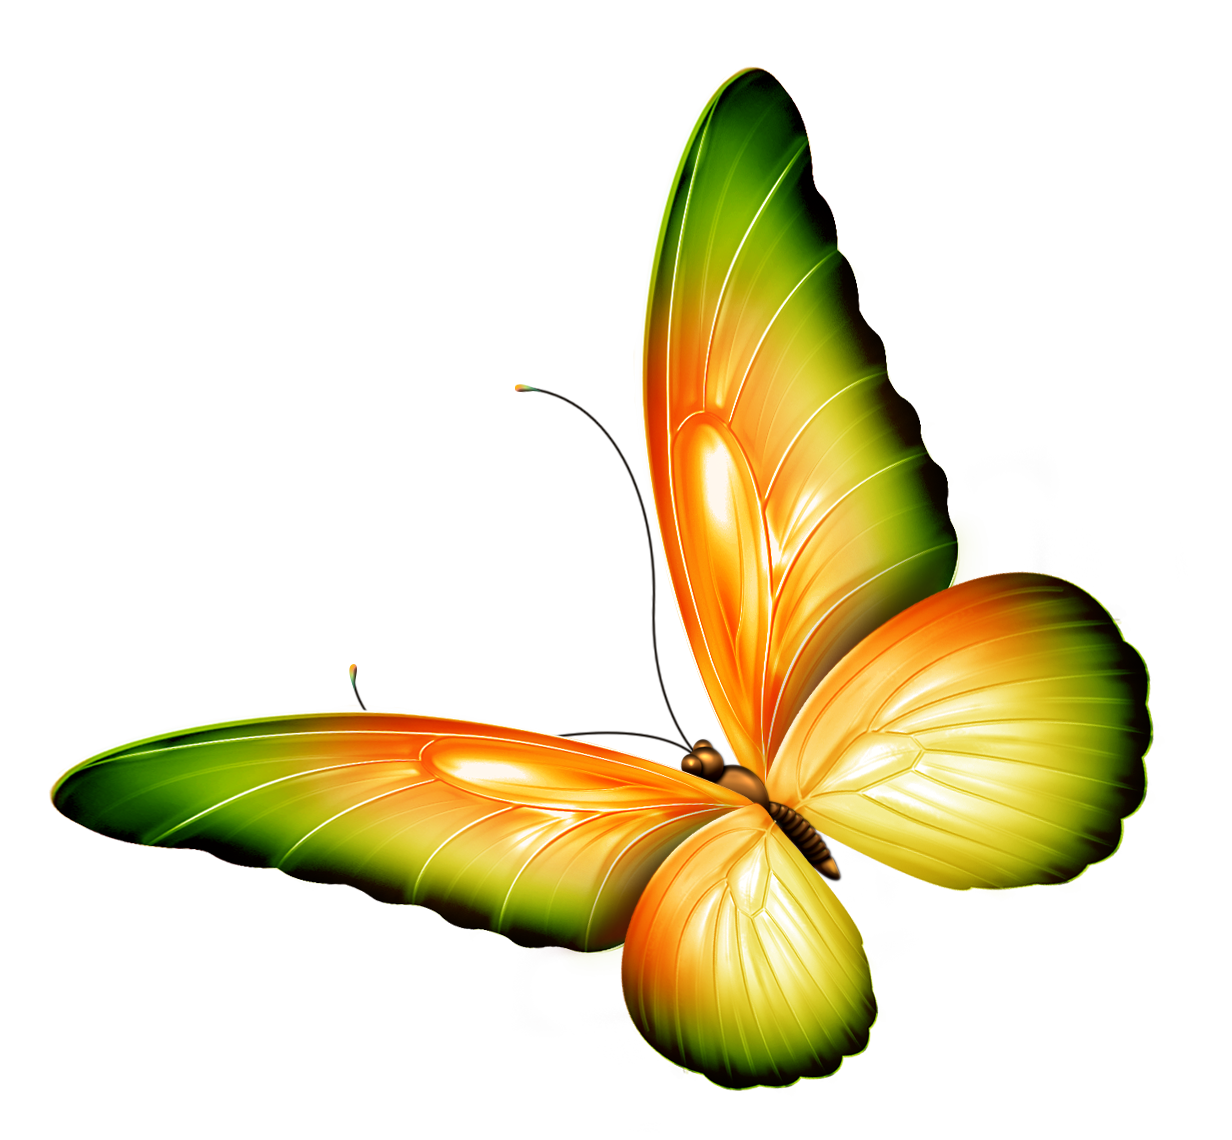 Photoshop png transparent background. Yellow and green butterfly